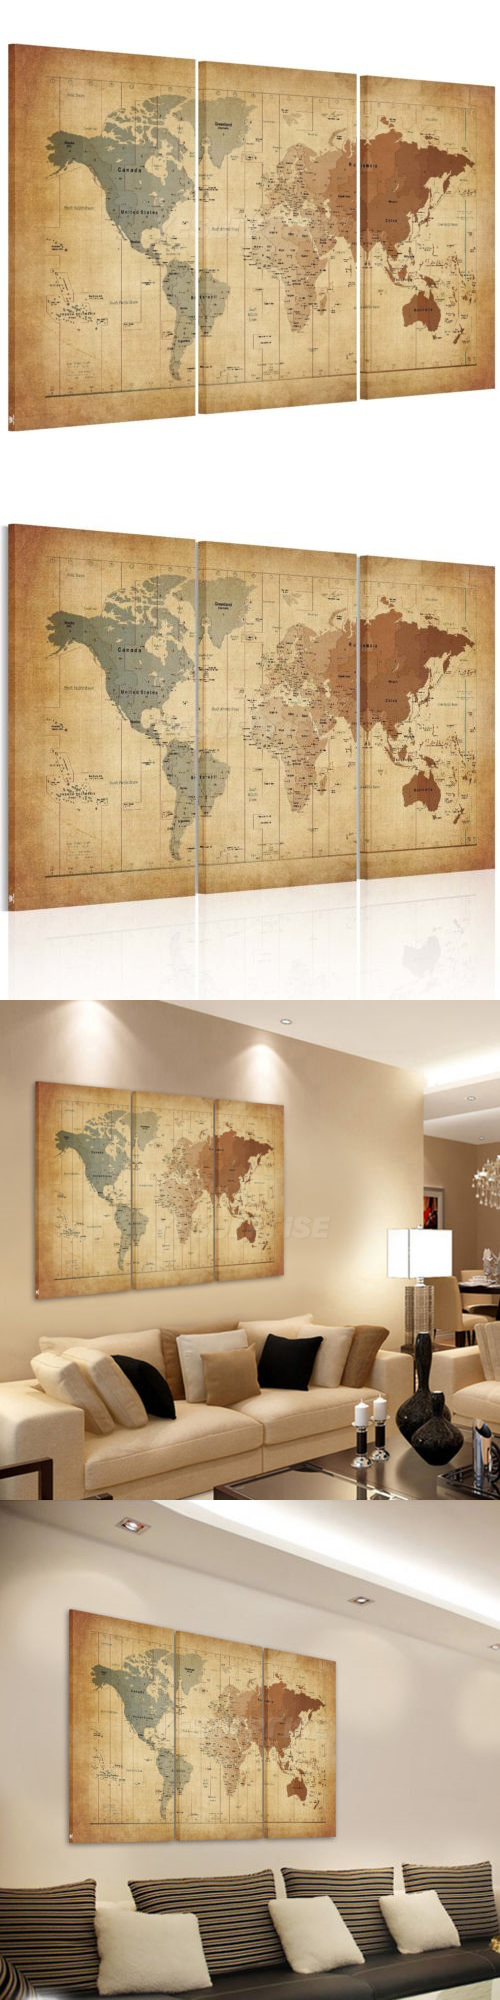 Art Paintings Mixed Media Collage: Us Ship Canvas Print Home Decor ...